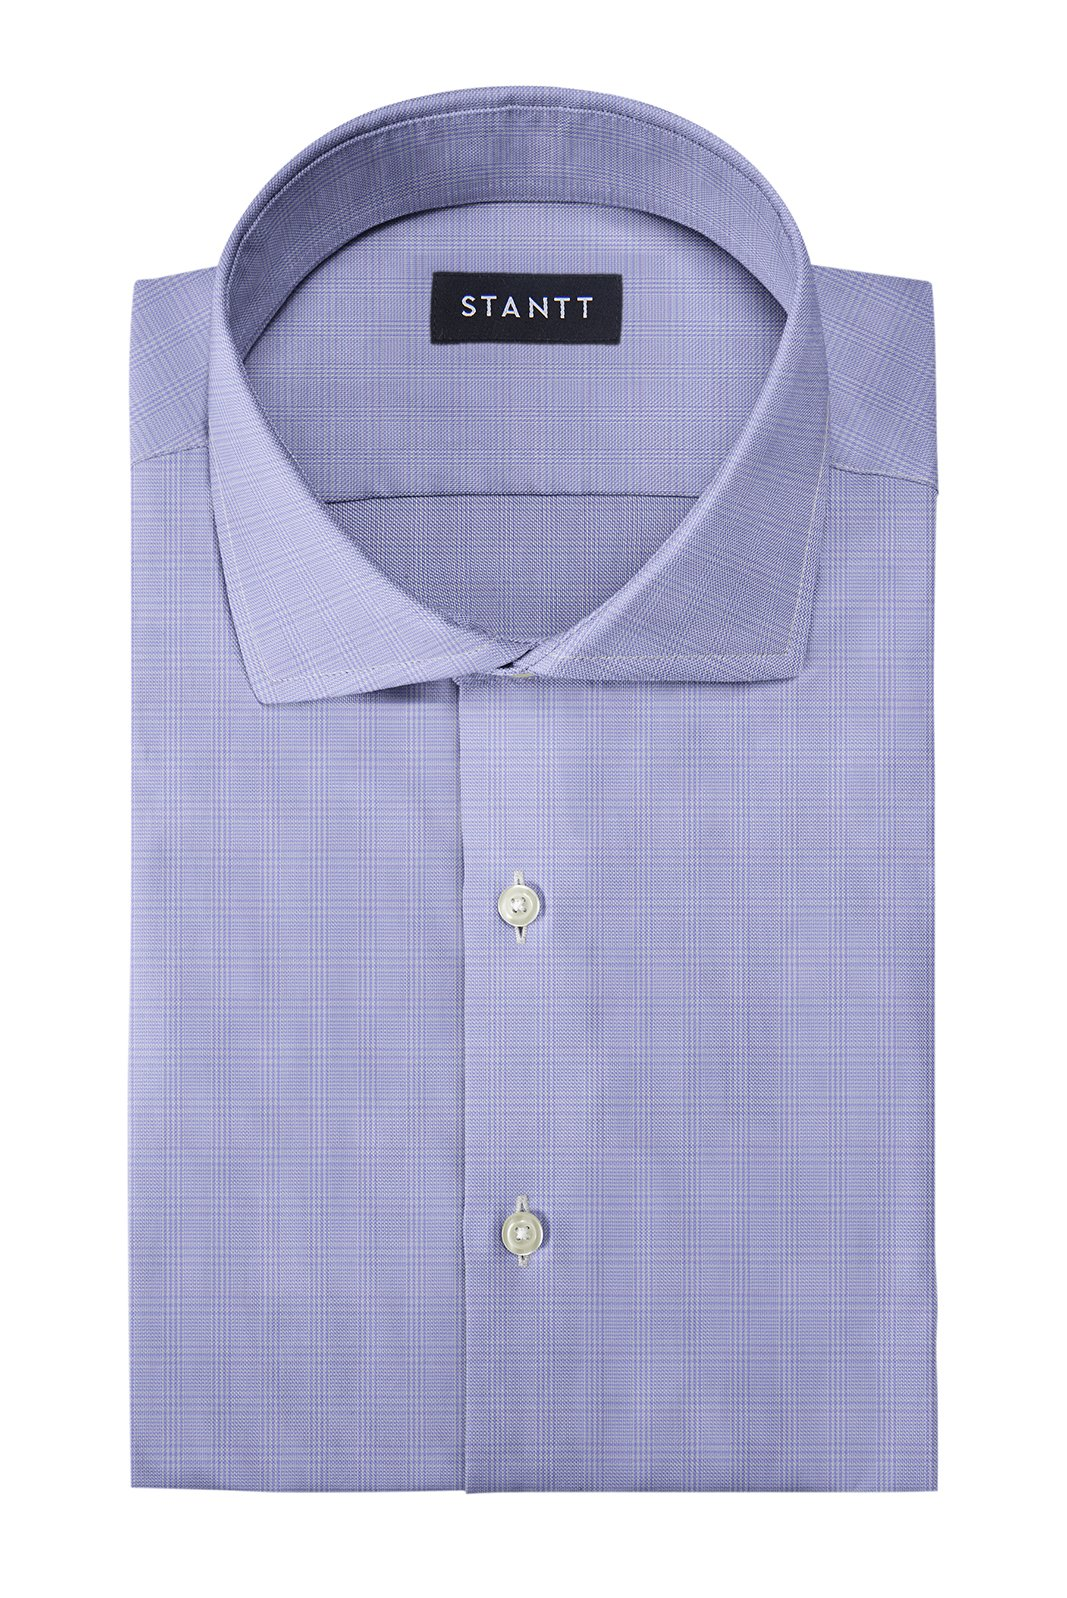 Wrinkle-Resistant Lavender Prince of Wales Check: Cutaway Collar, French Cuff